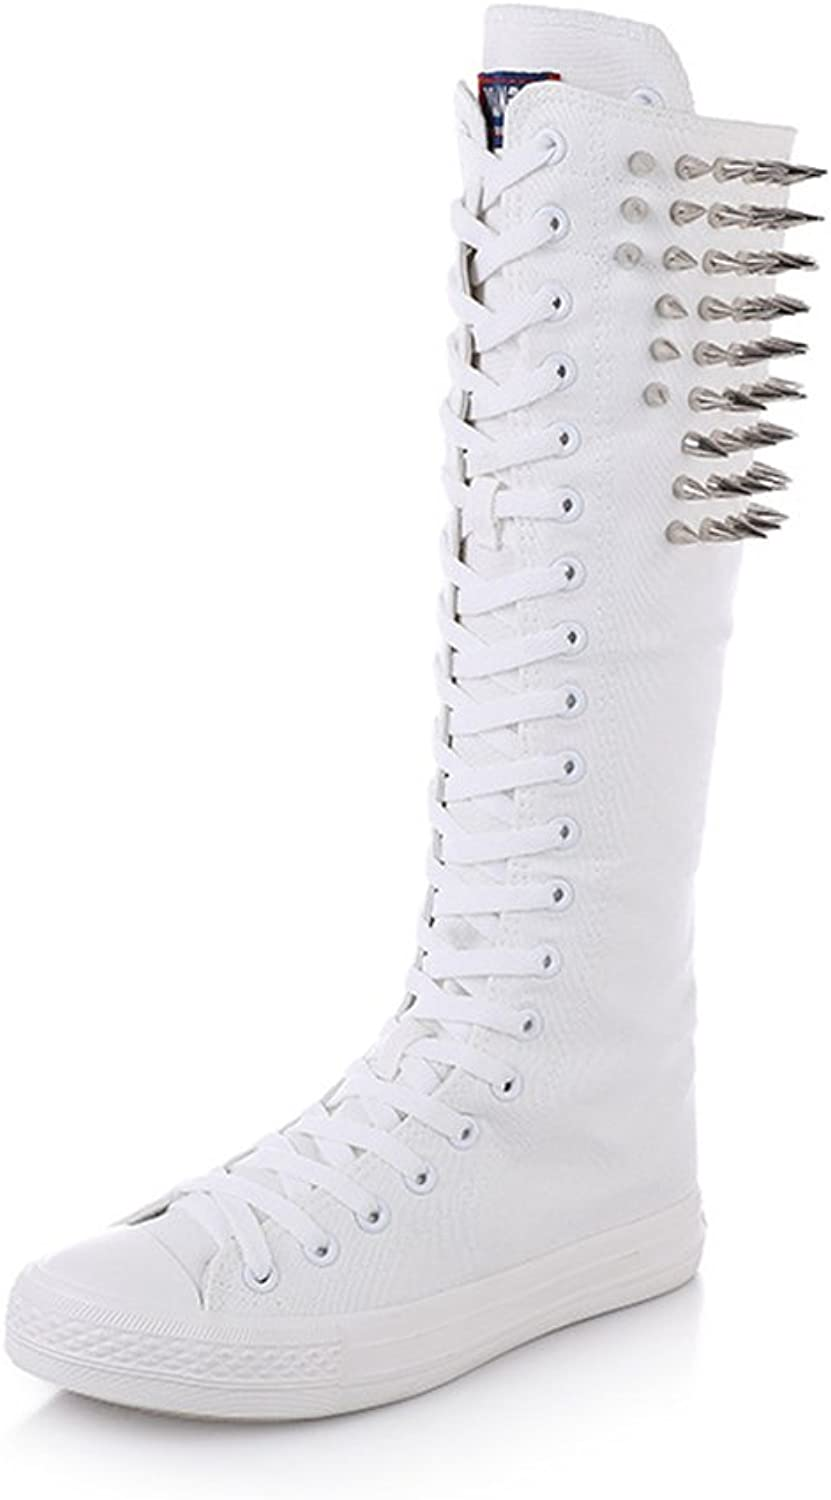 Stay real Women Girls Punk Silver Cone Rivets shoes Lace Zipper Knee High Boots Canvas shoes Dance shoes